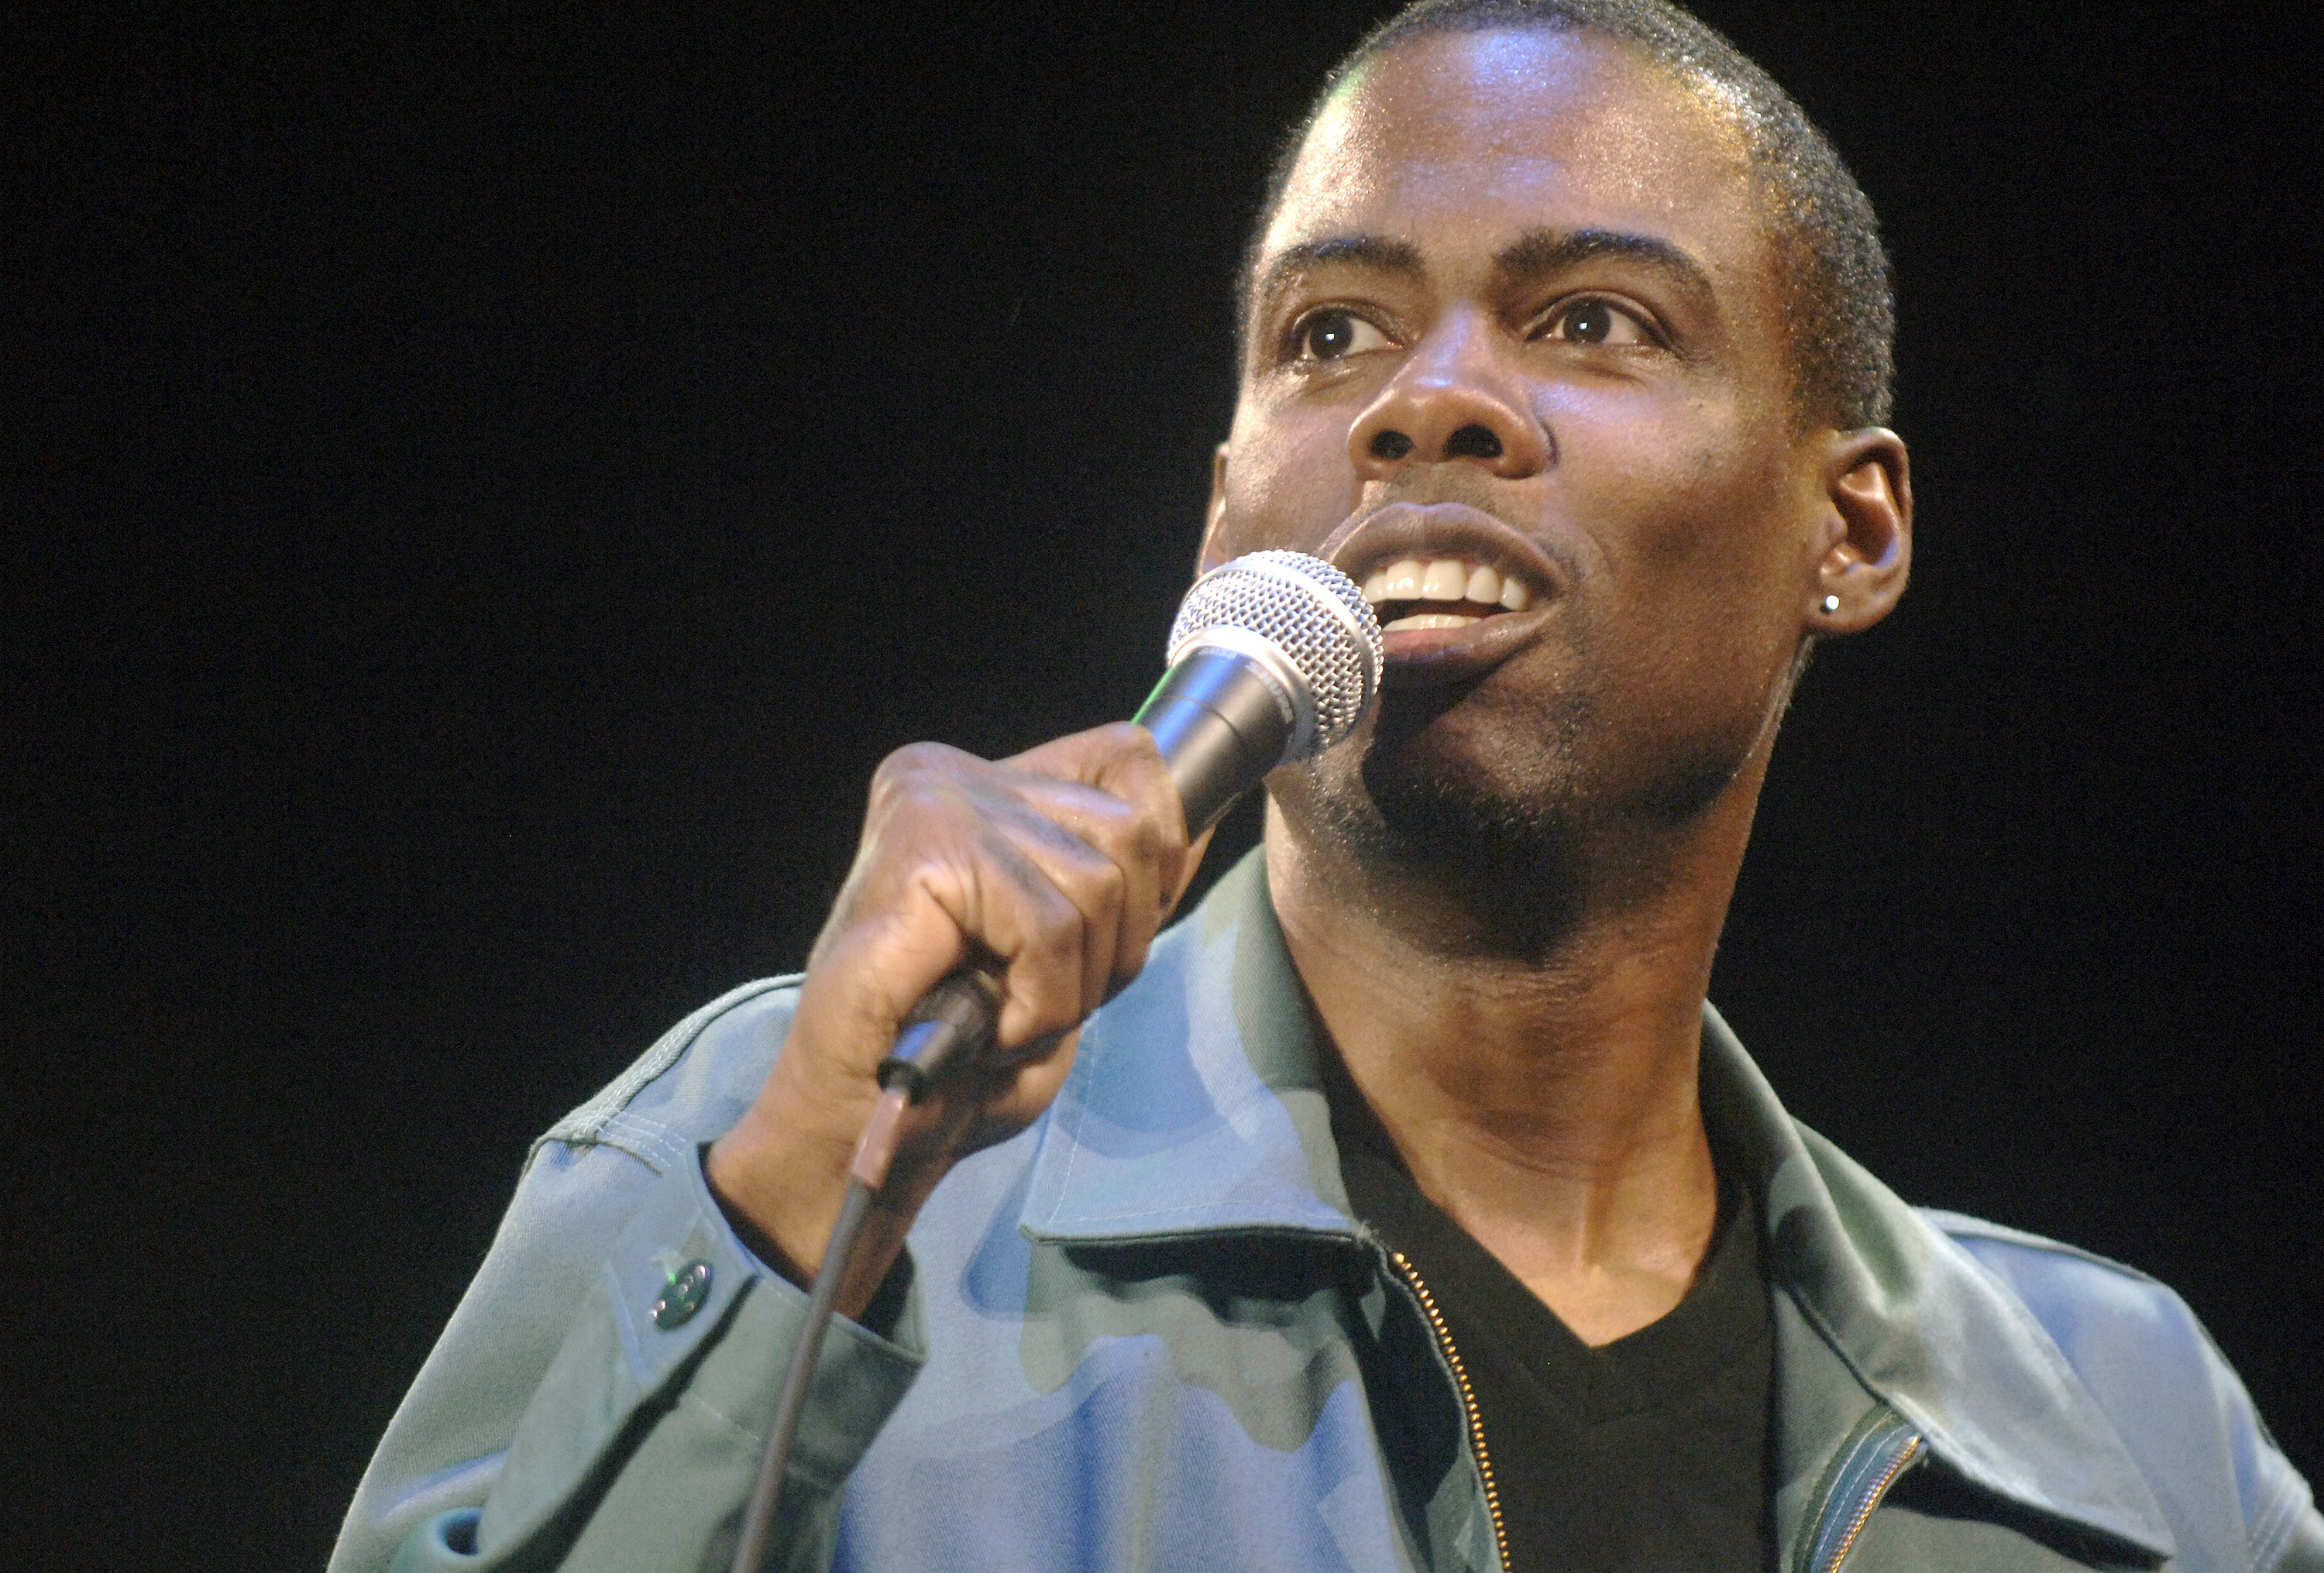 Chris Rock onstage speaks into the microphone